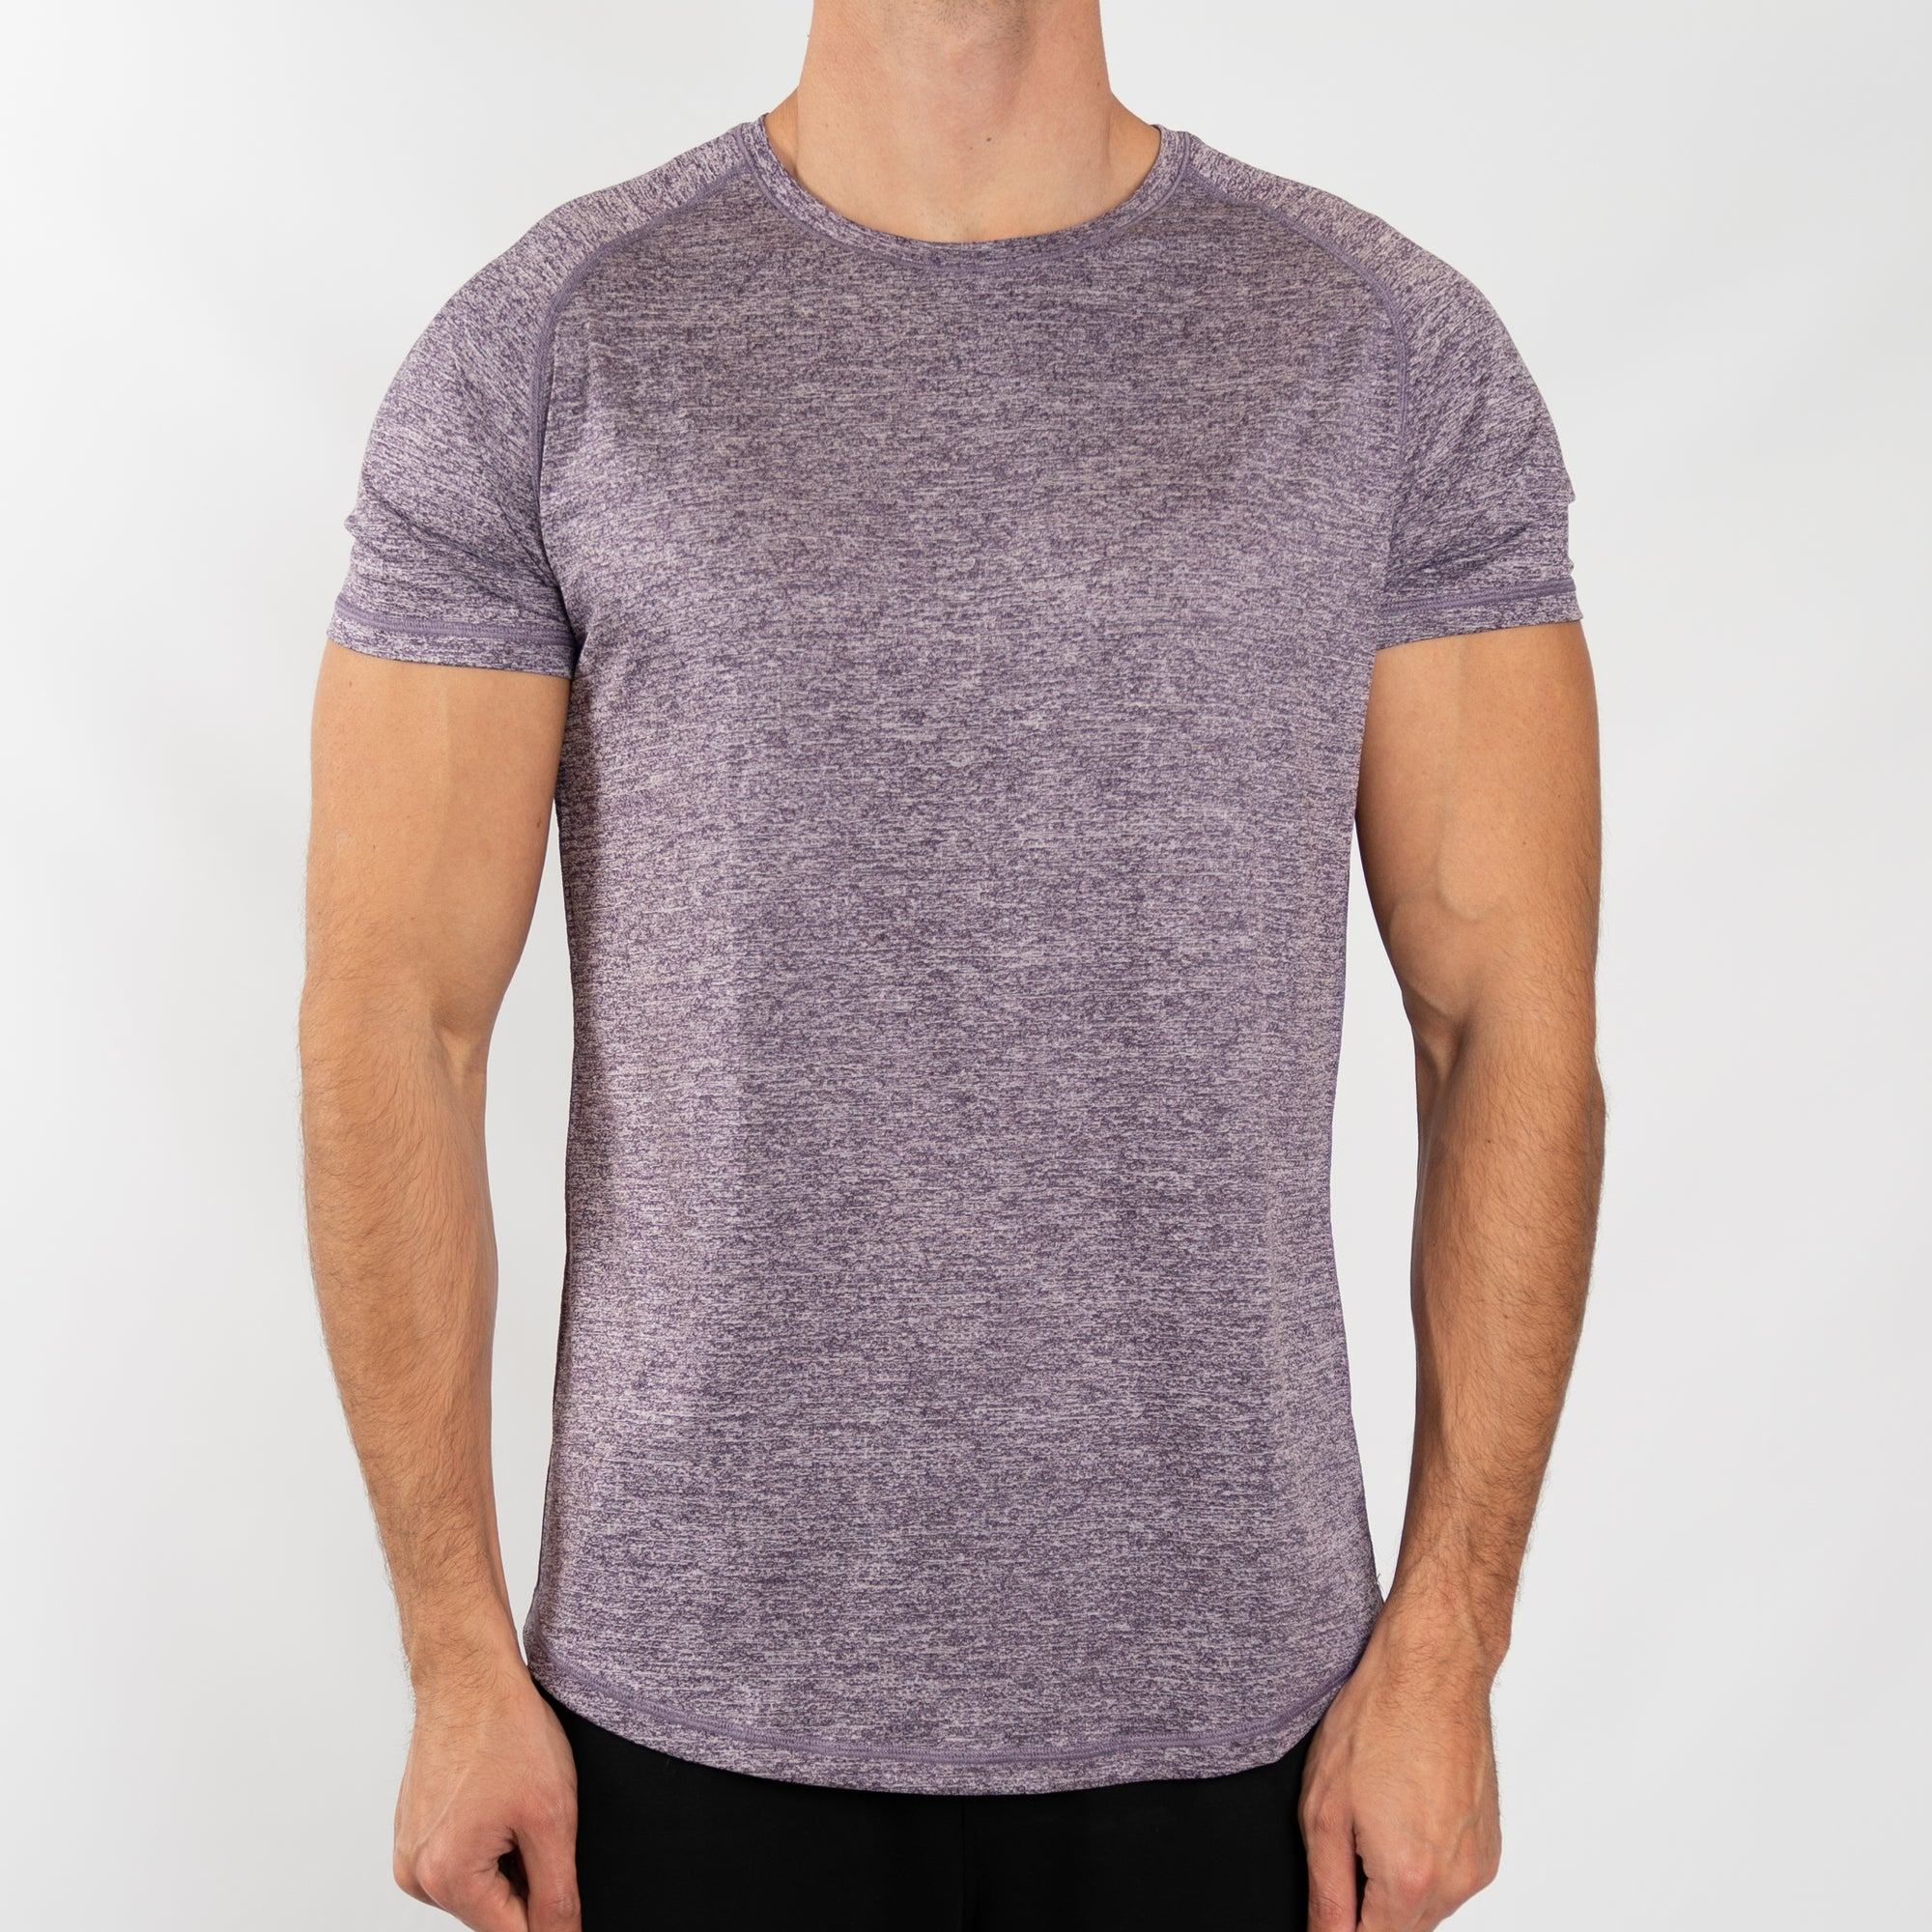 Men's Performance Tee in Purple - Southern Athletica